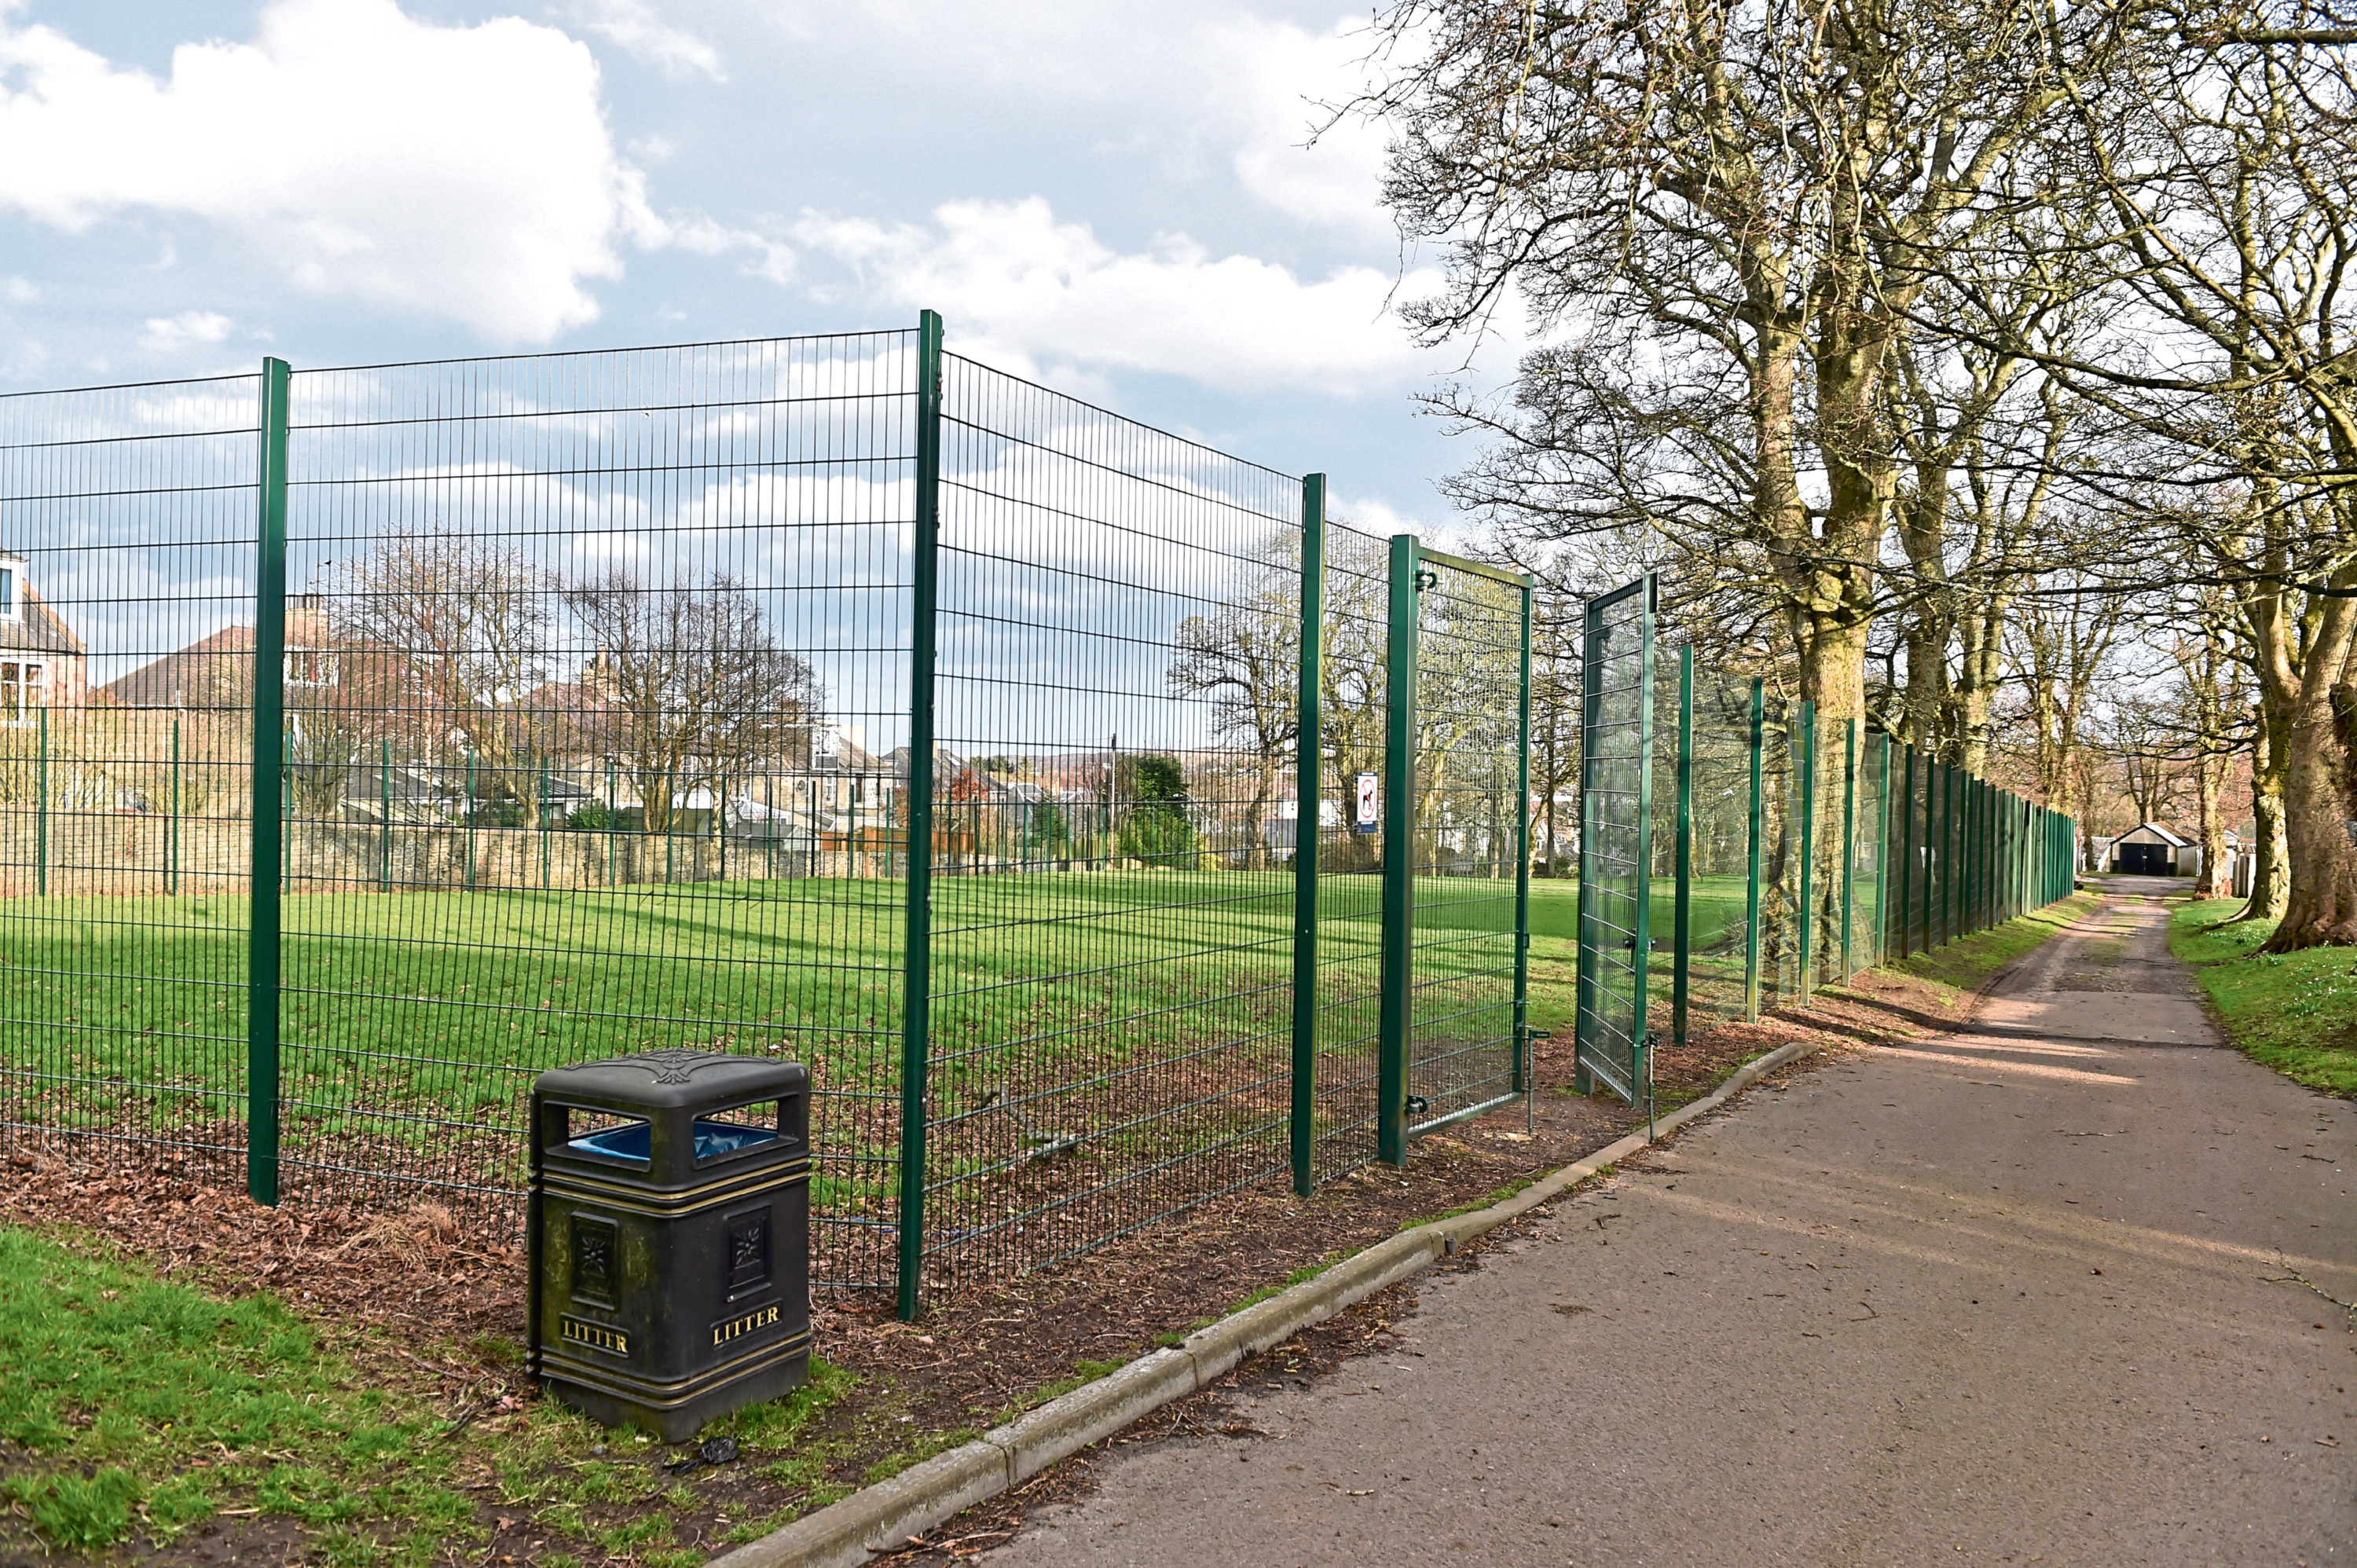 Plans to create a 3G pitch were rejected